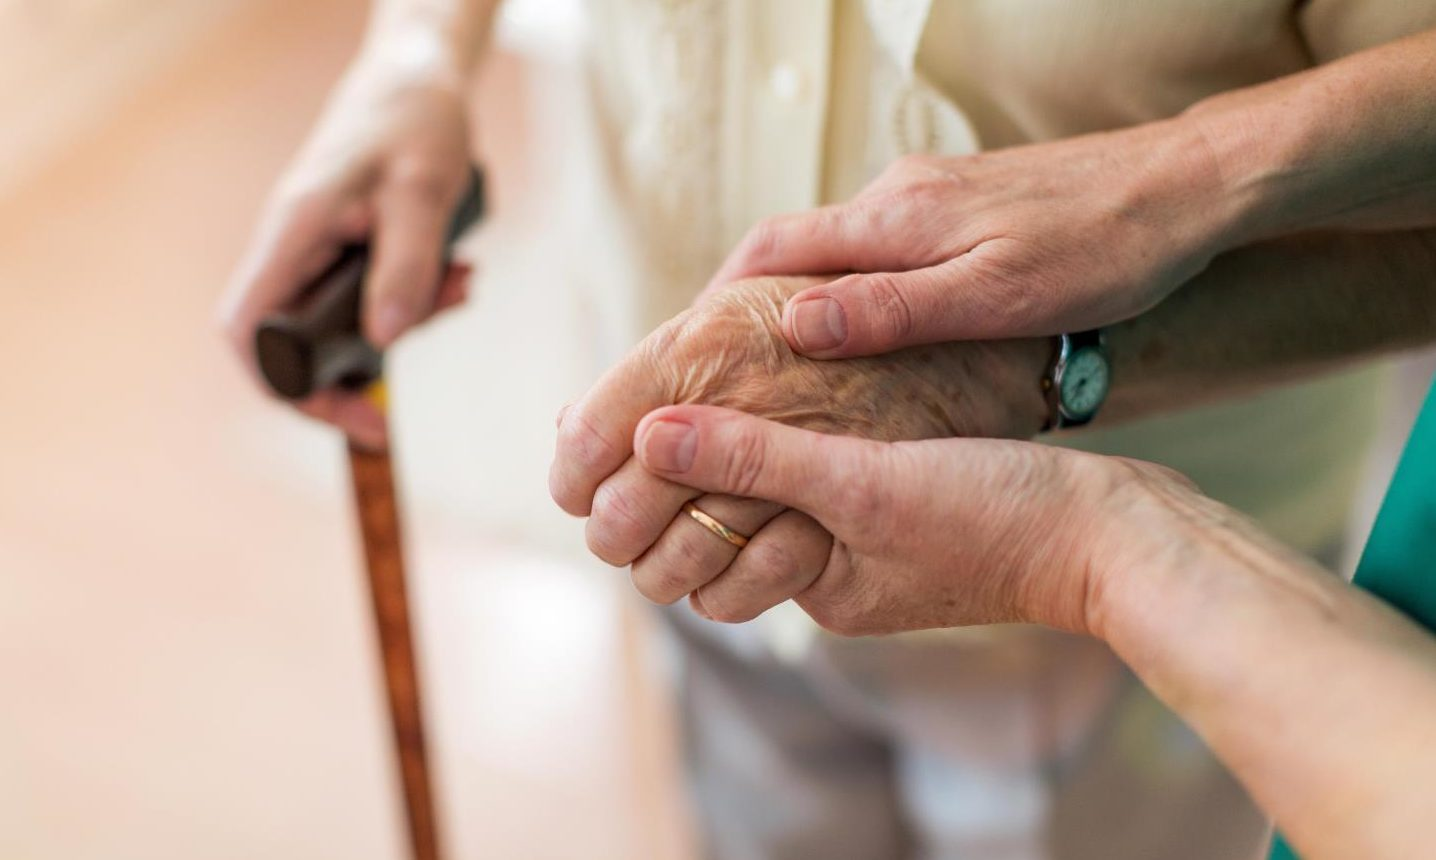 Almost one third of referrals to the adult protection committee (APC) involved over-65s.